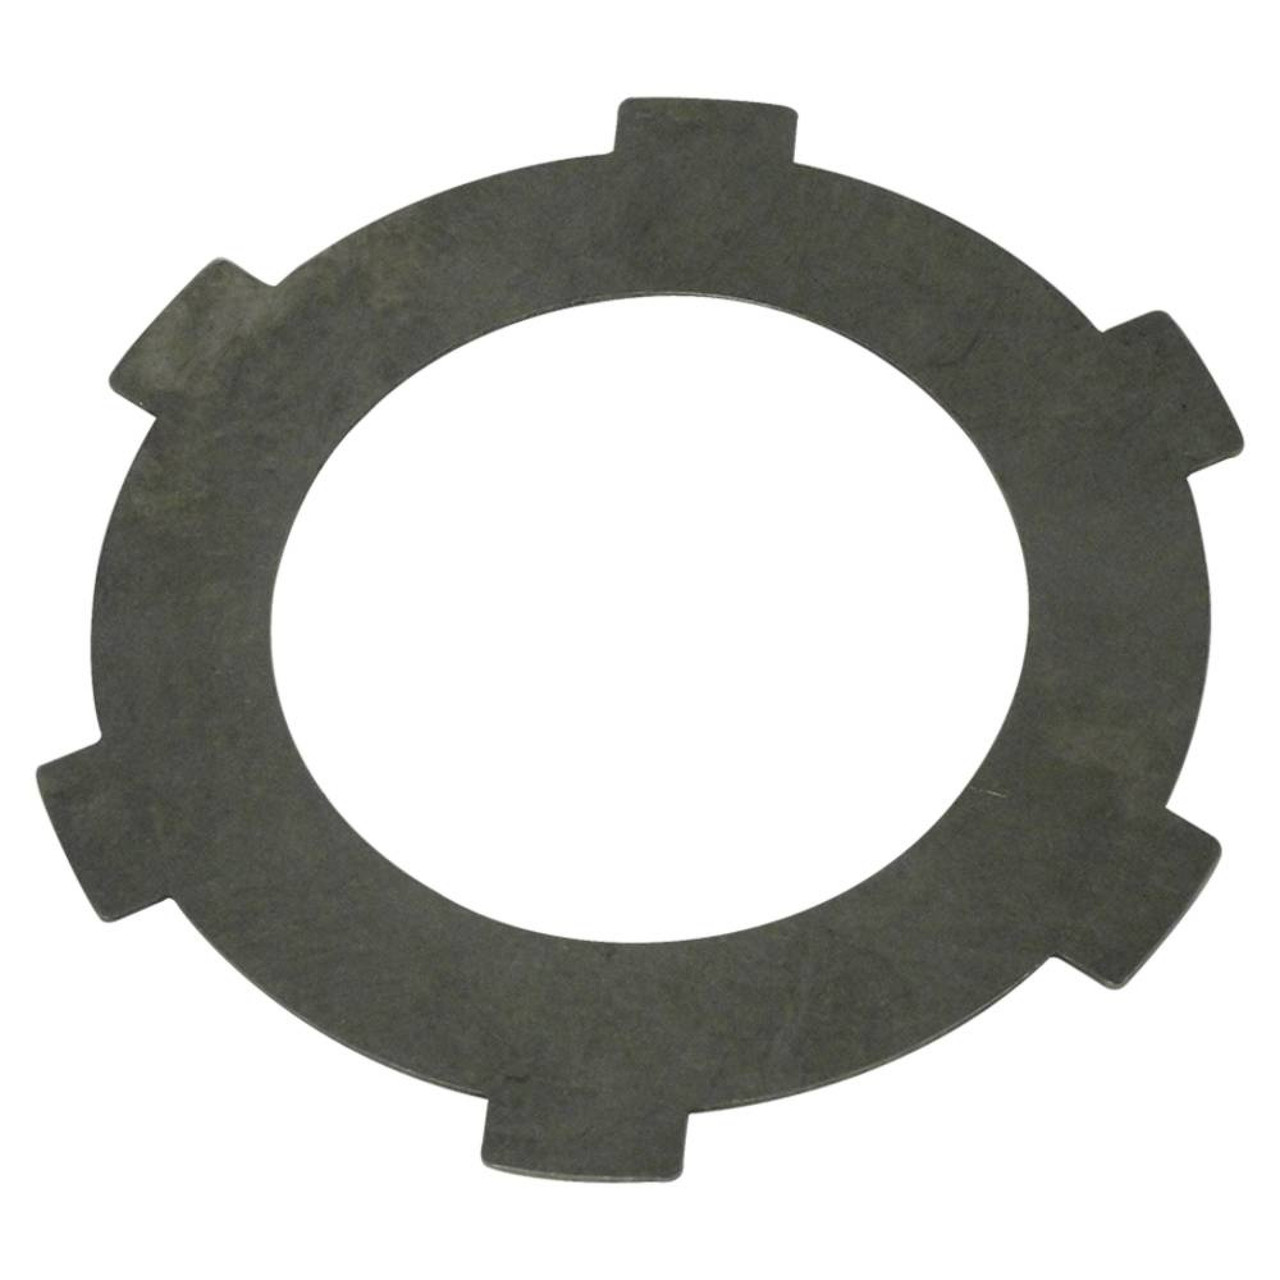 Clutch Plate for John Deere 50 Tractor, 520, 530, 60, 620, 630, 70, 720  A5145R